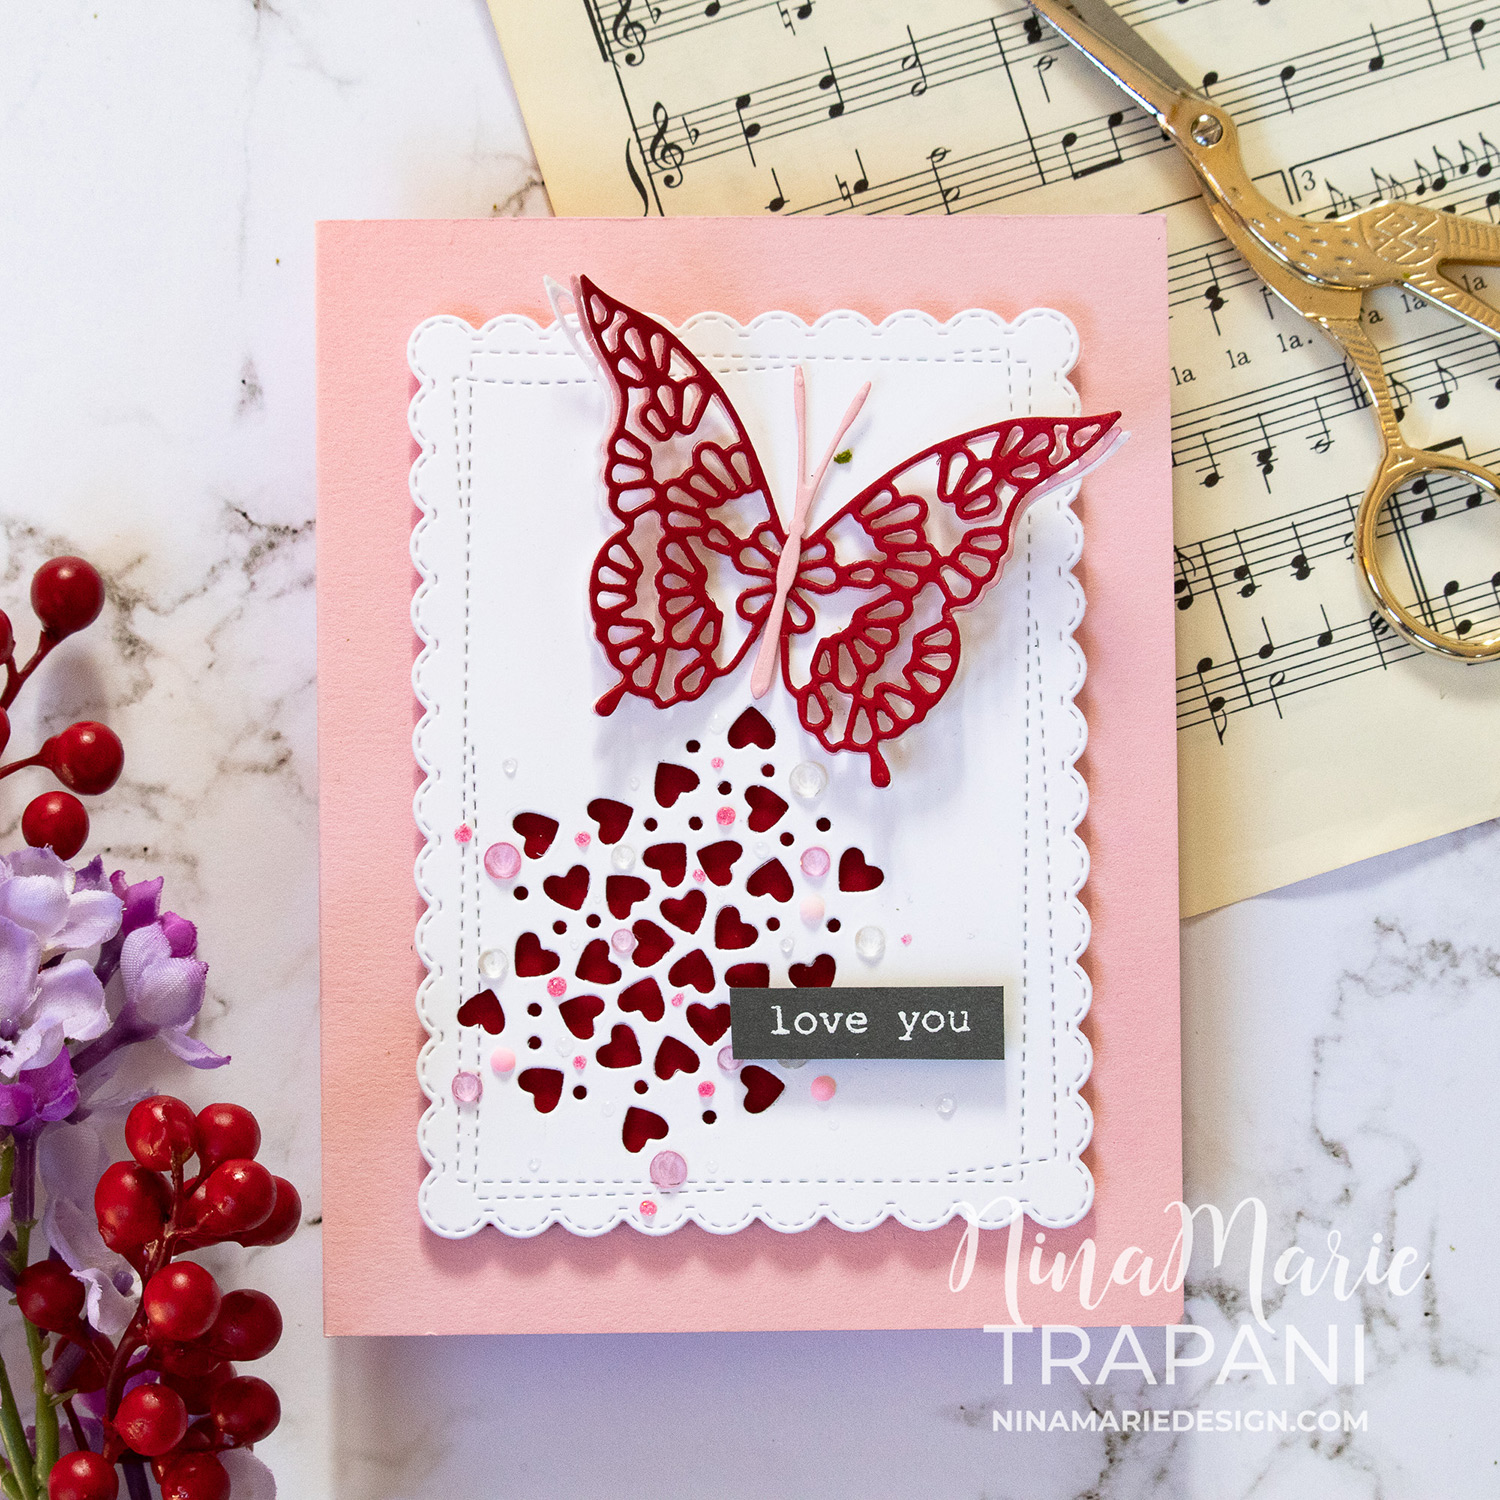 Dimensional Layered Die Cuts Featuring Memory Box